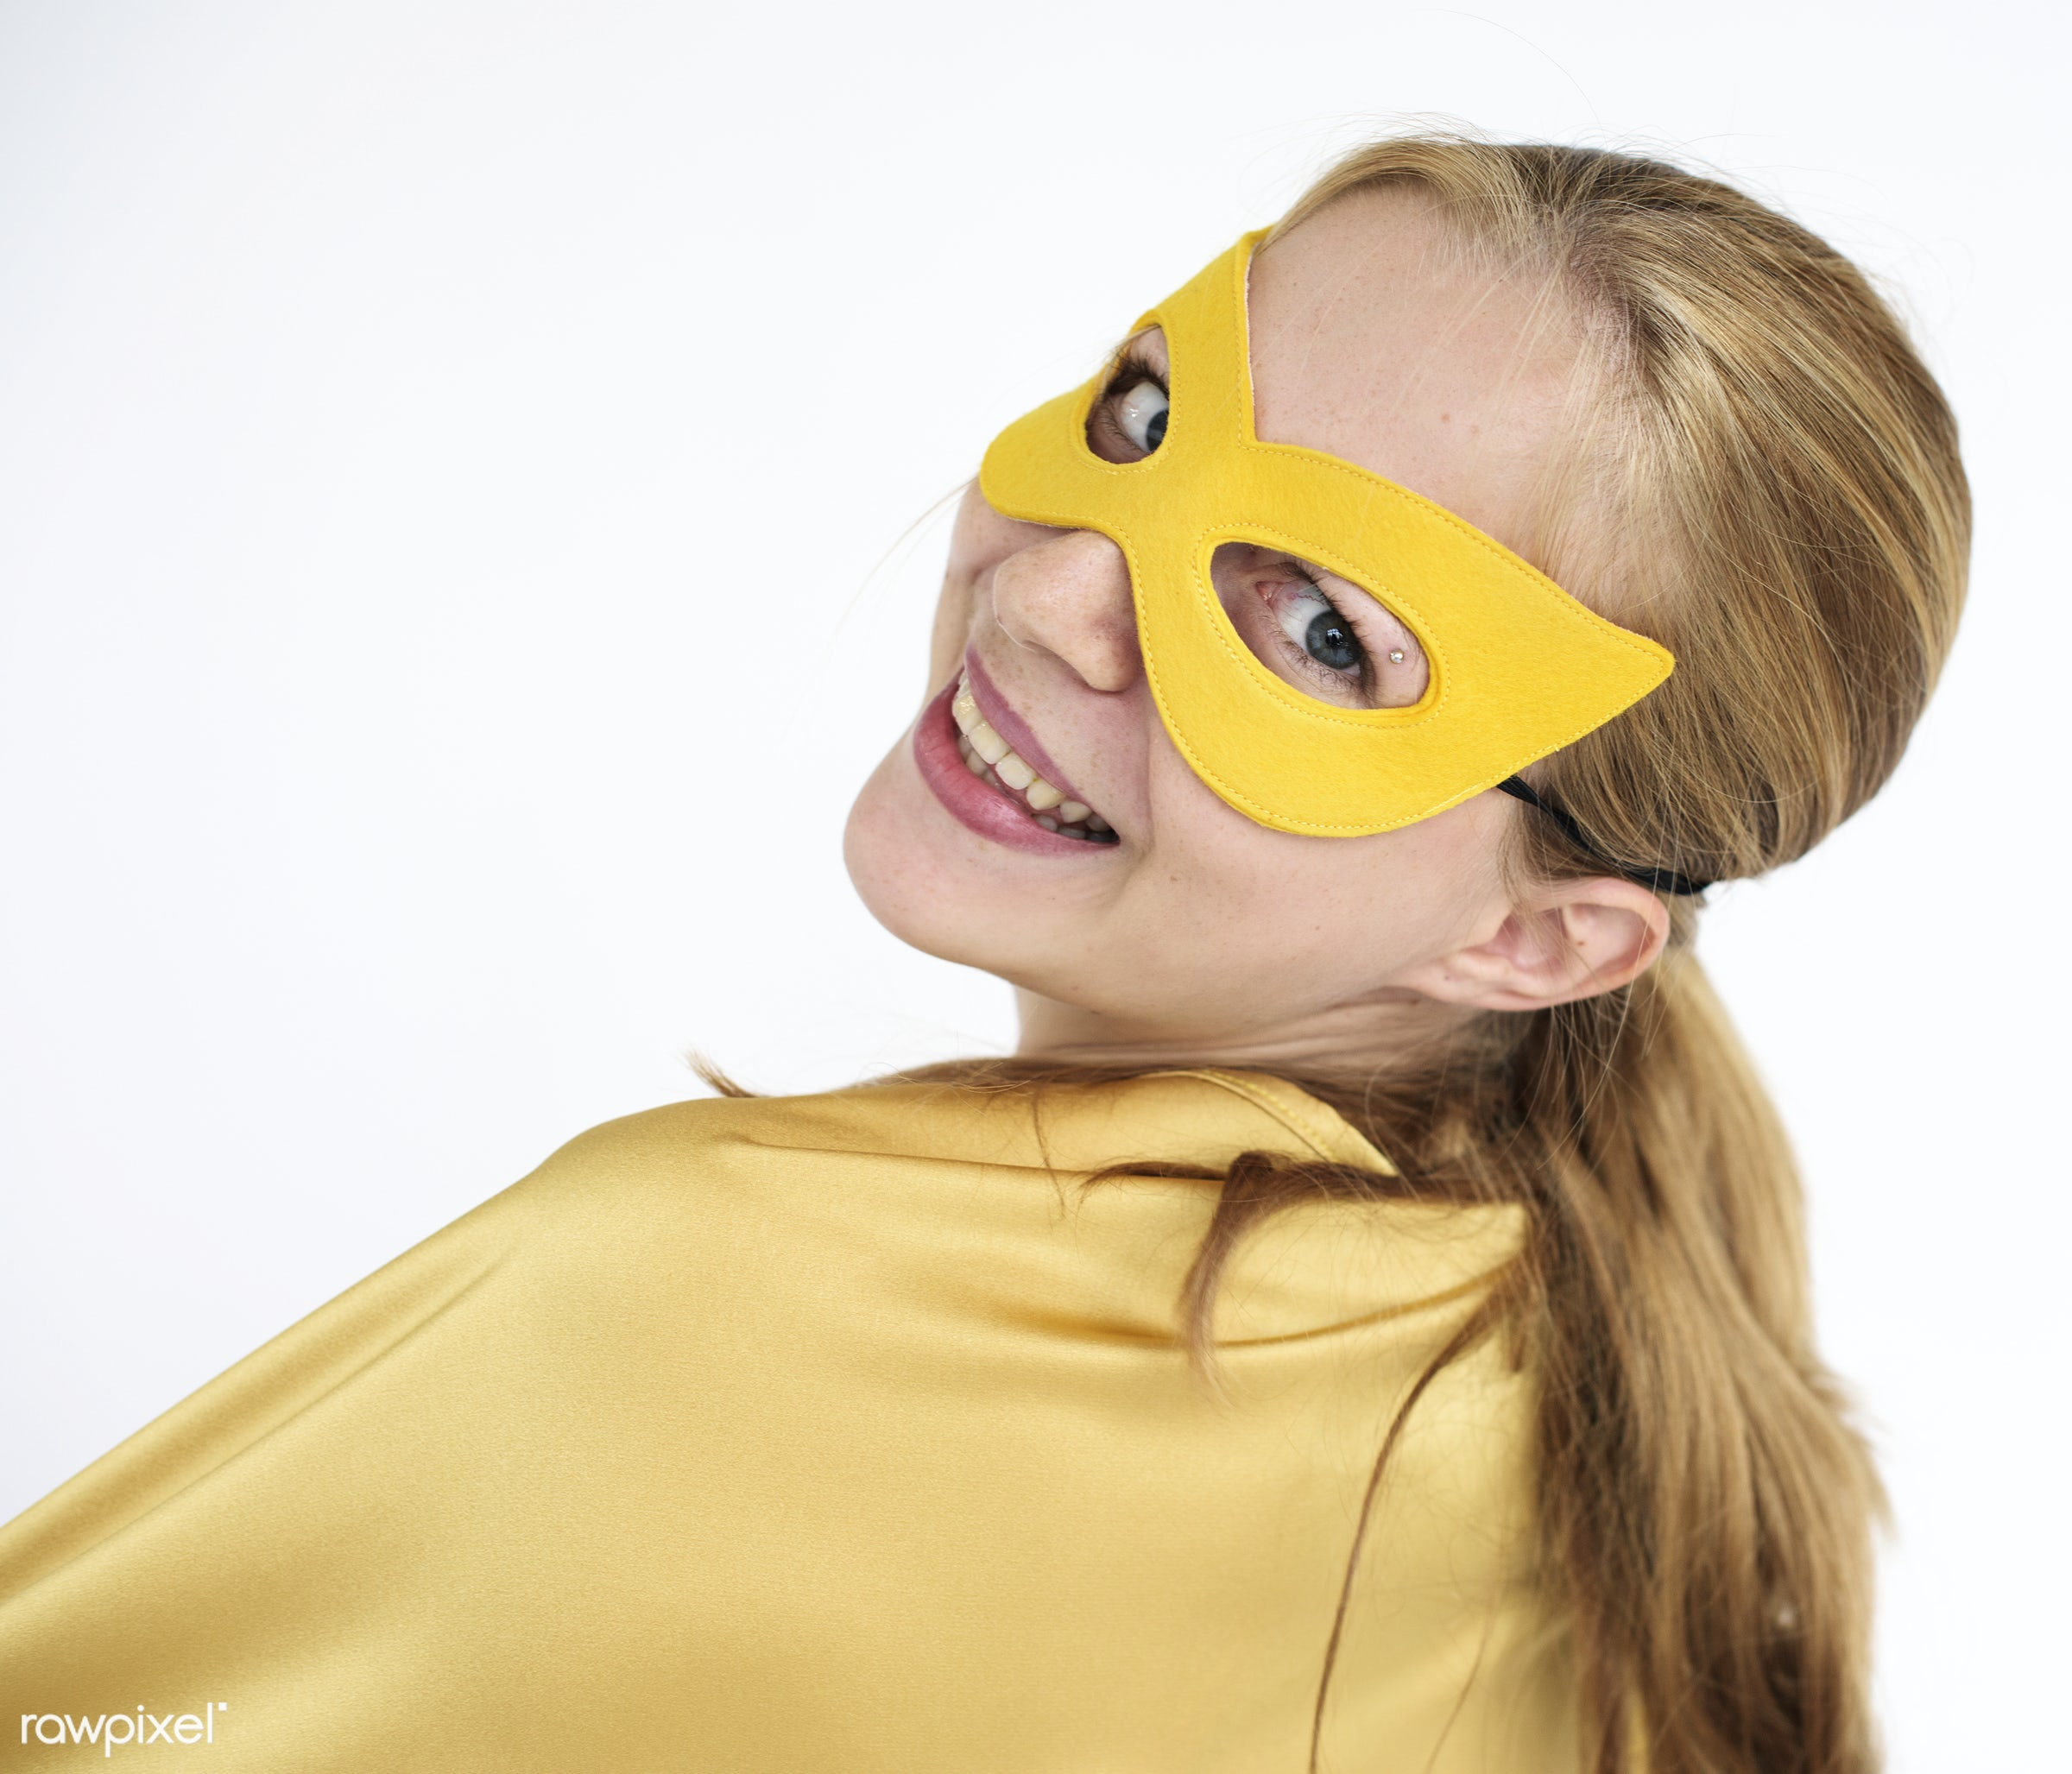 Blonde girl in superhero costume - alone, background, blonde, blonde hair, blue eyed, cape, casual, caucasian, cheerful,...